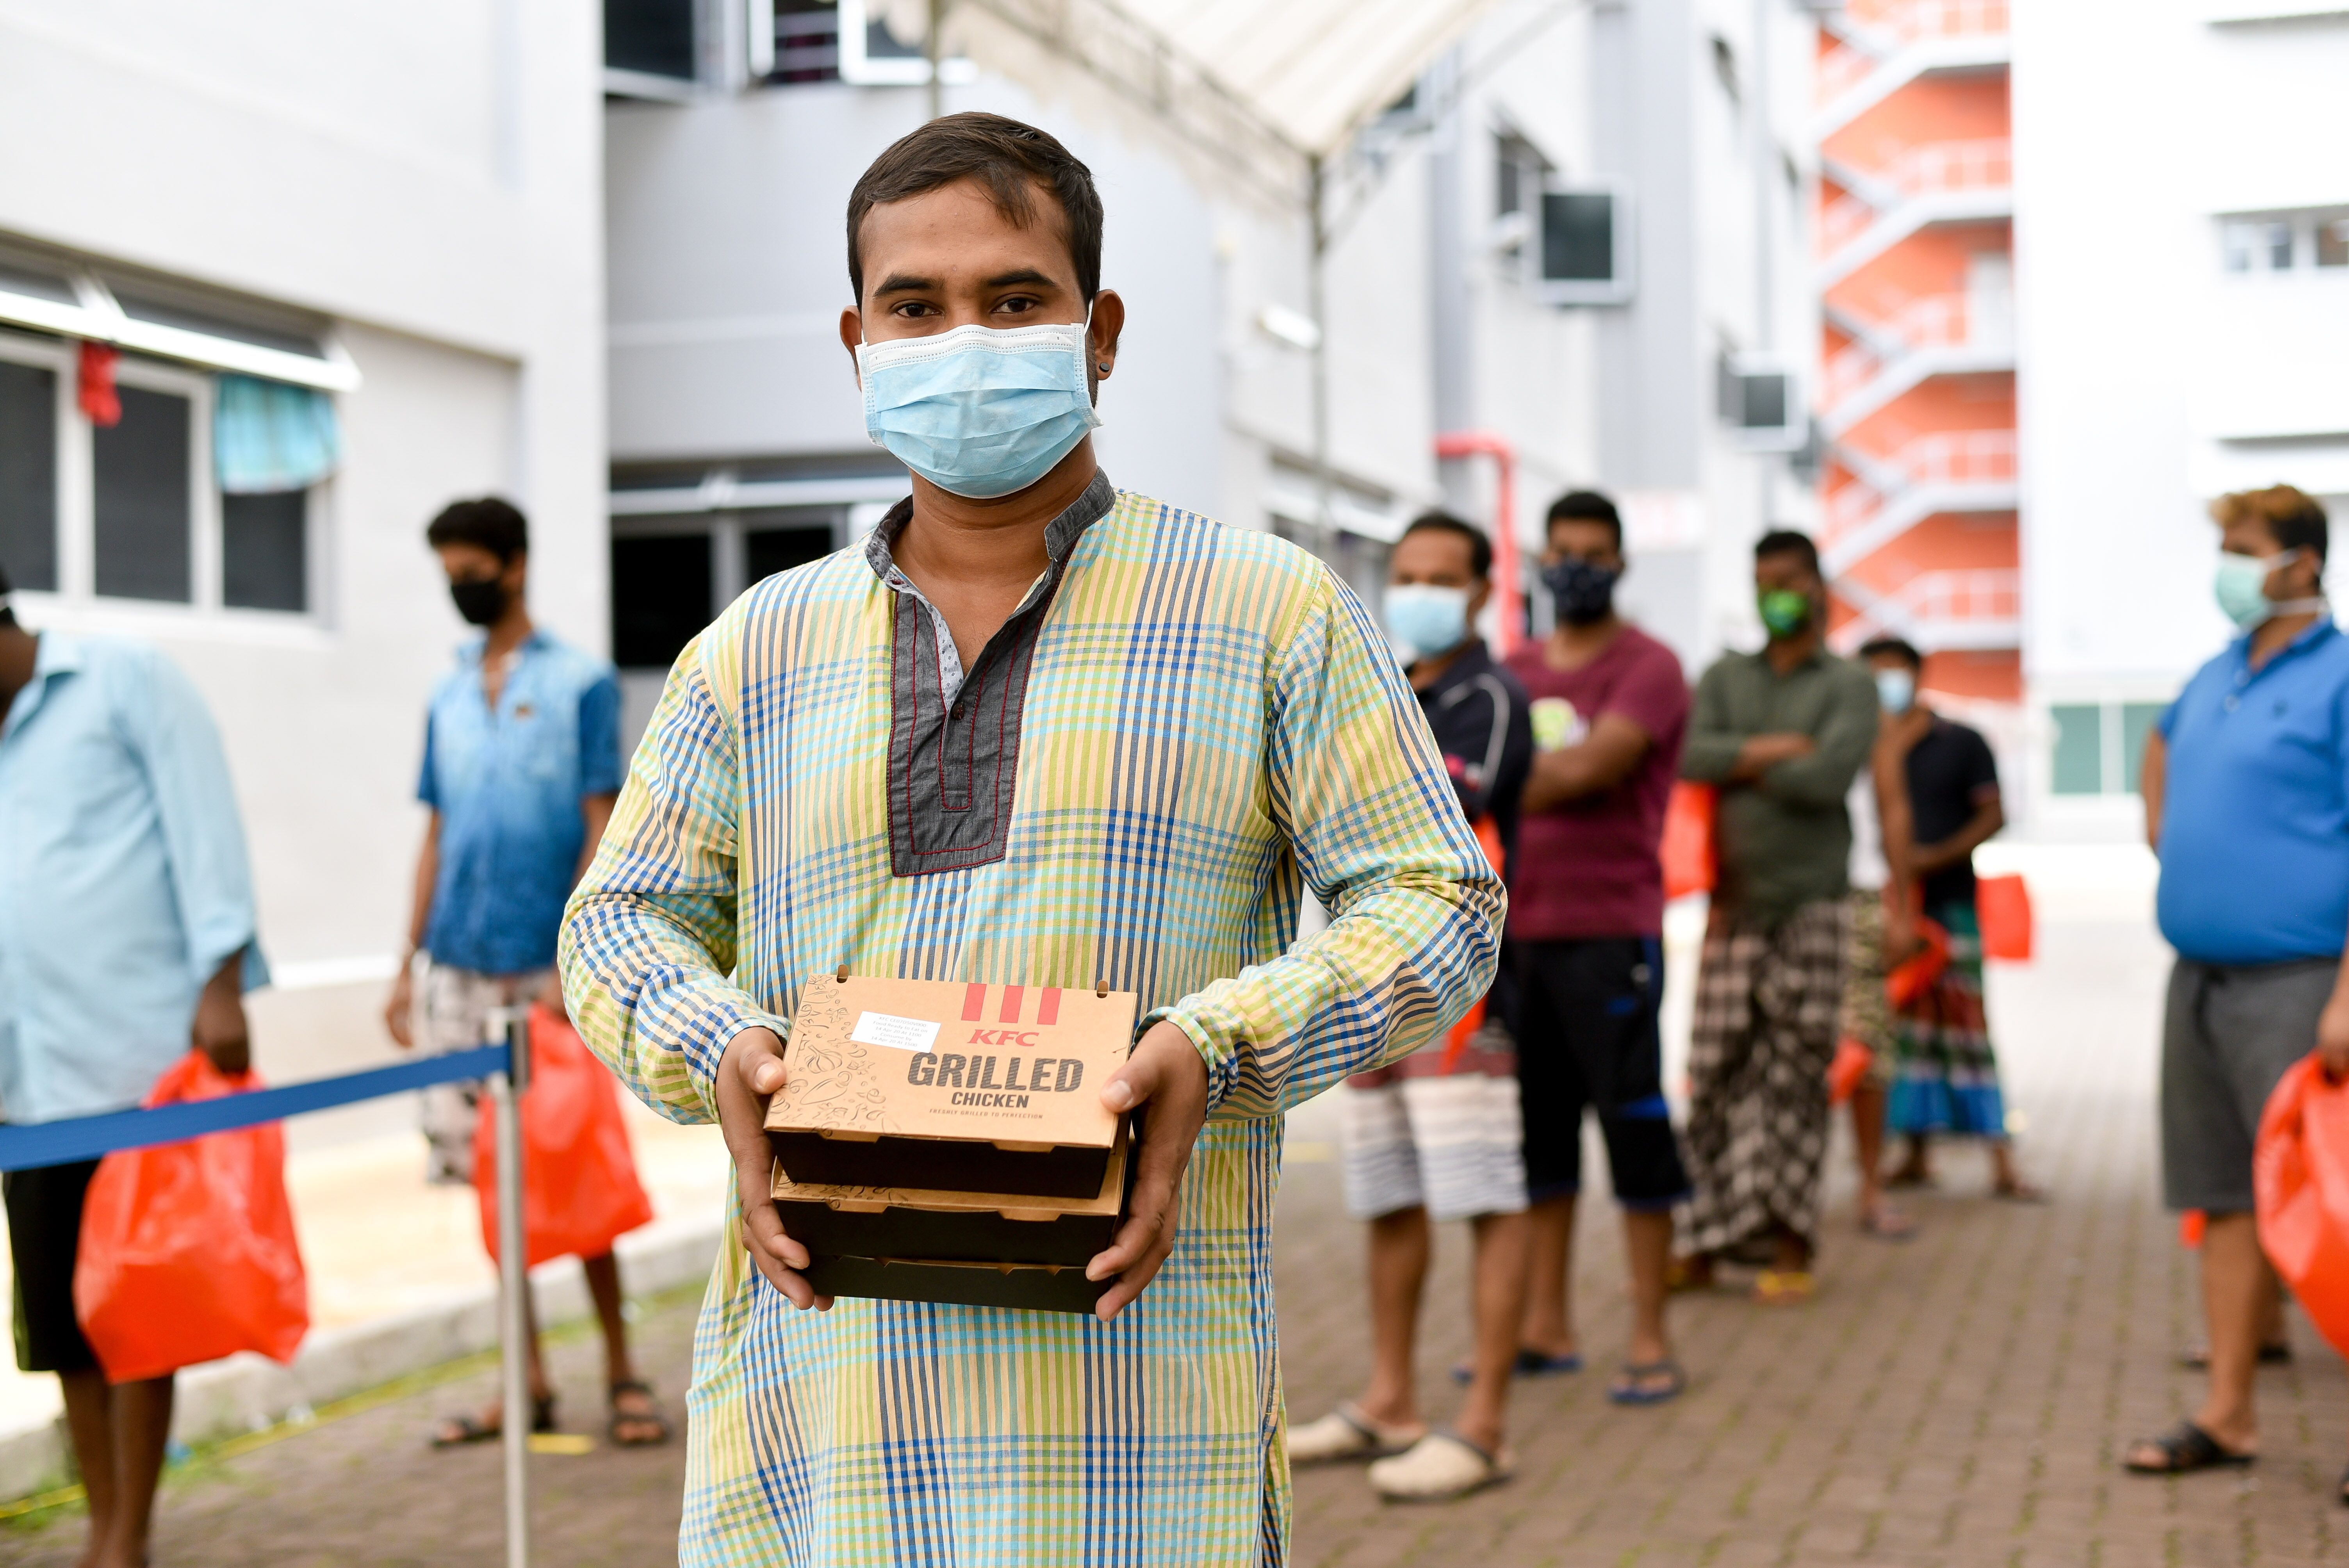 The workers also received fast food treats to celebrate the occasion. Photo courtesy: Ministry of Manpower (MOM)